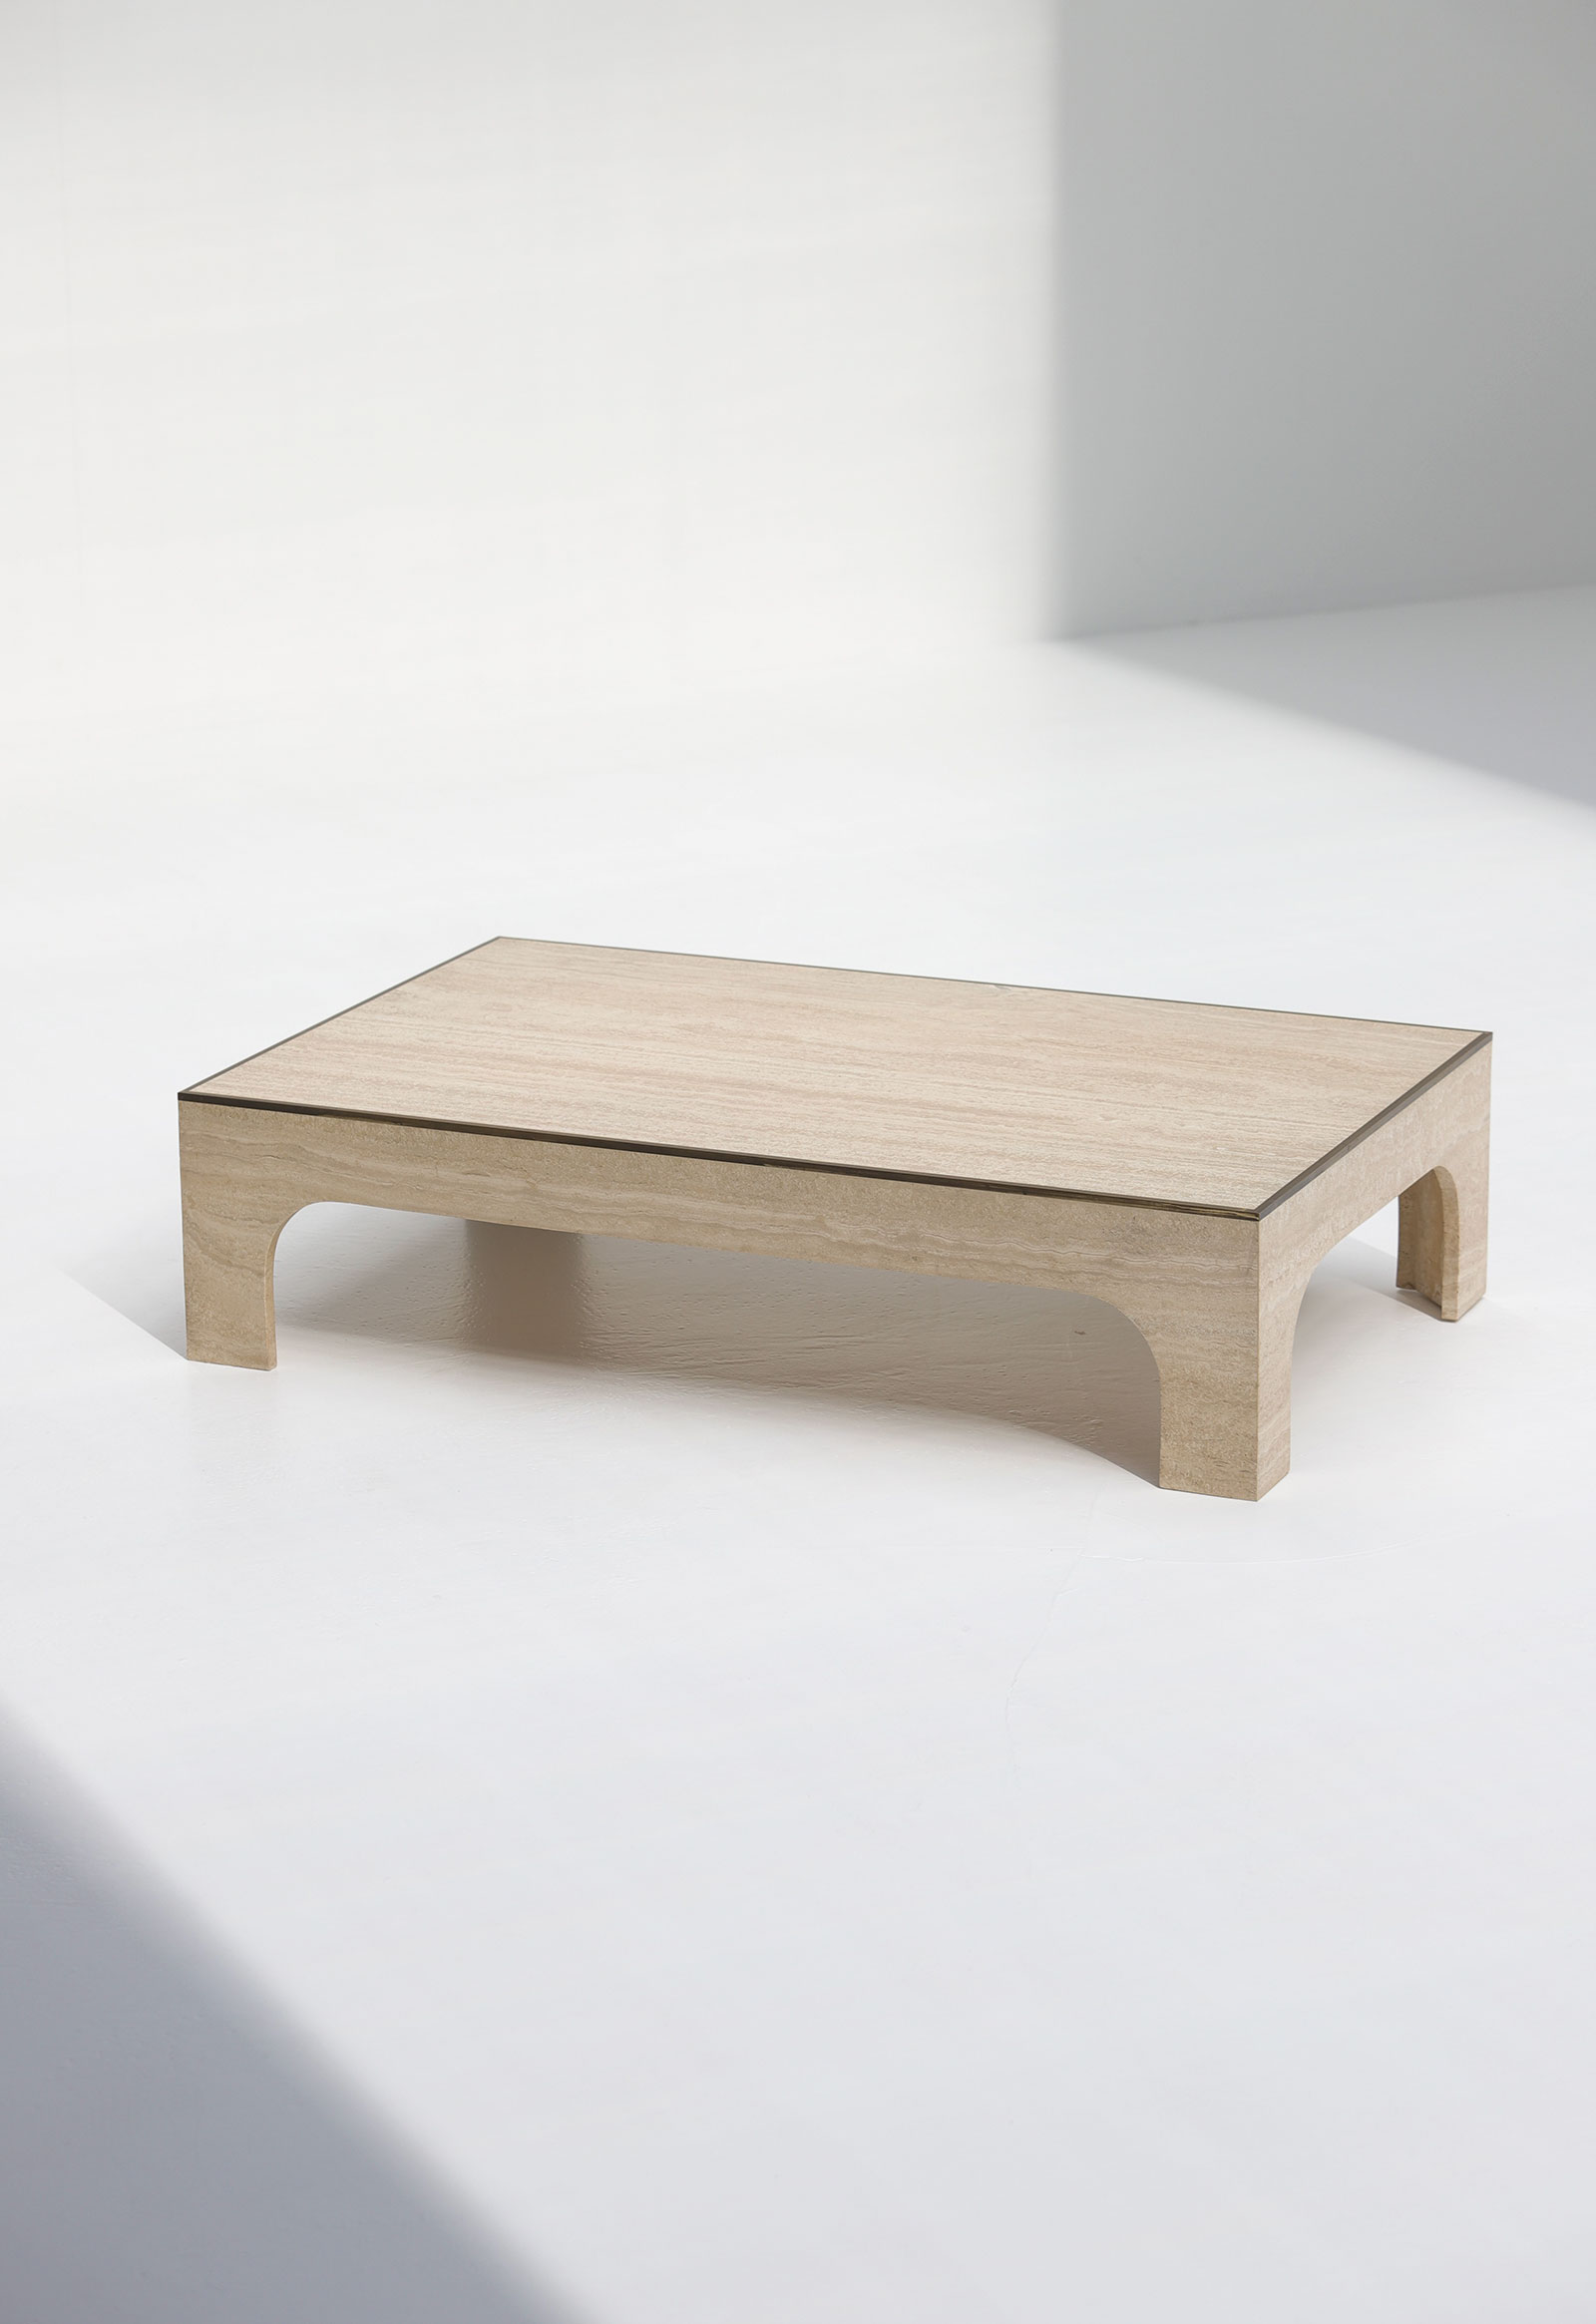 Decorative Willy Rizzo Travertin Coffee Table image 3